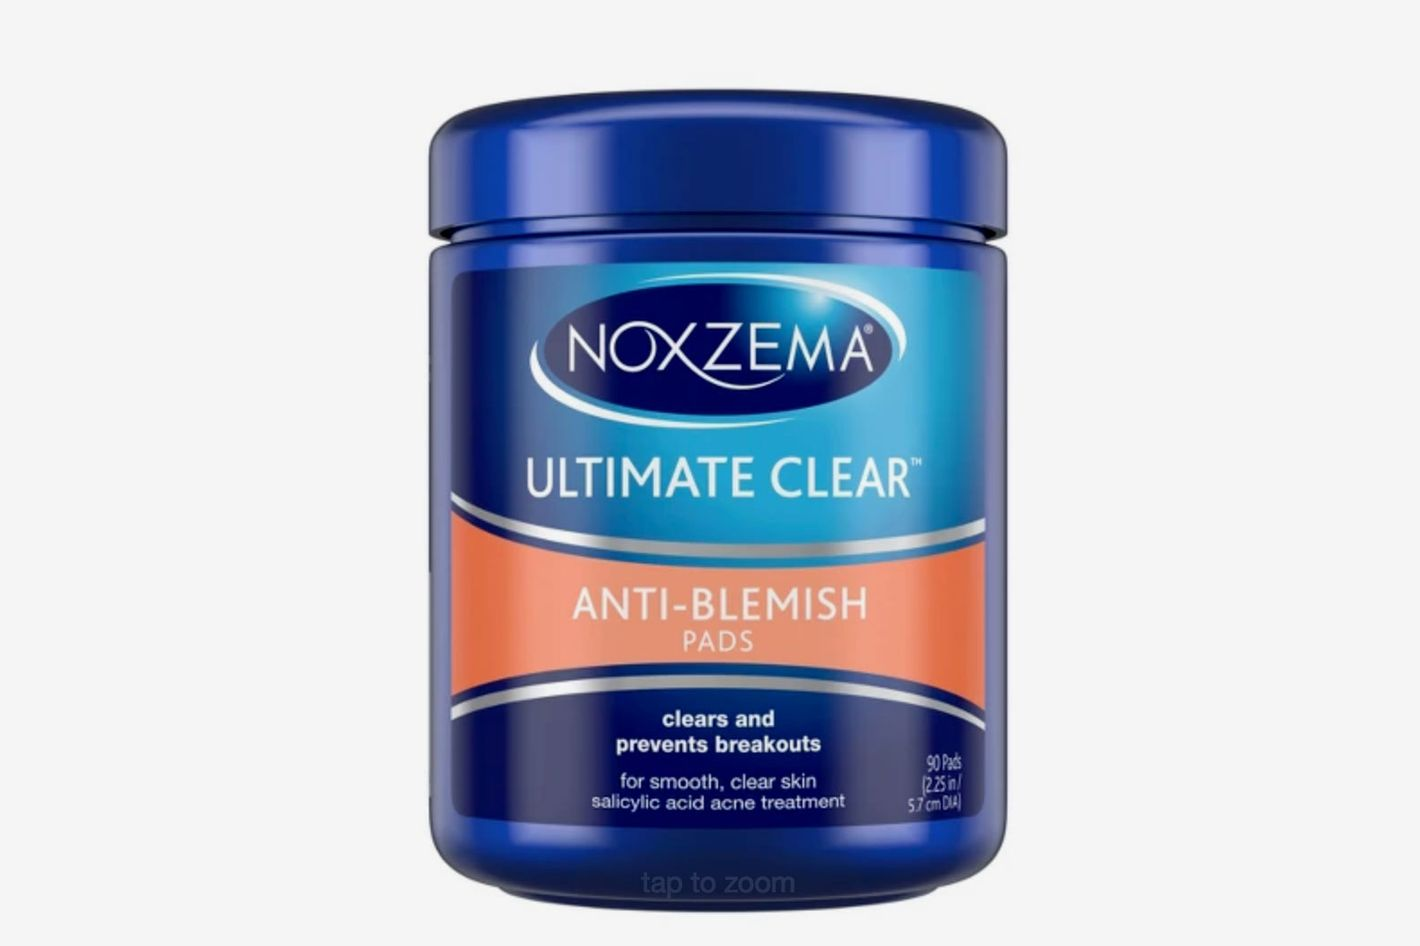 Noxema Ultimate Clear Anti-Blemish Pads